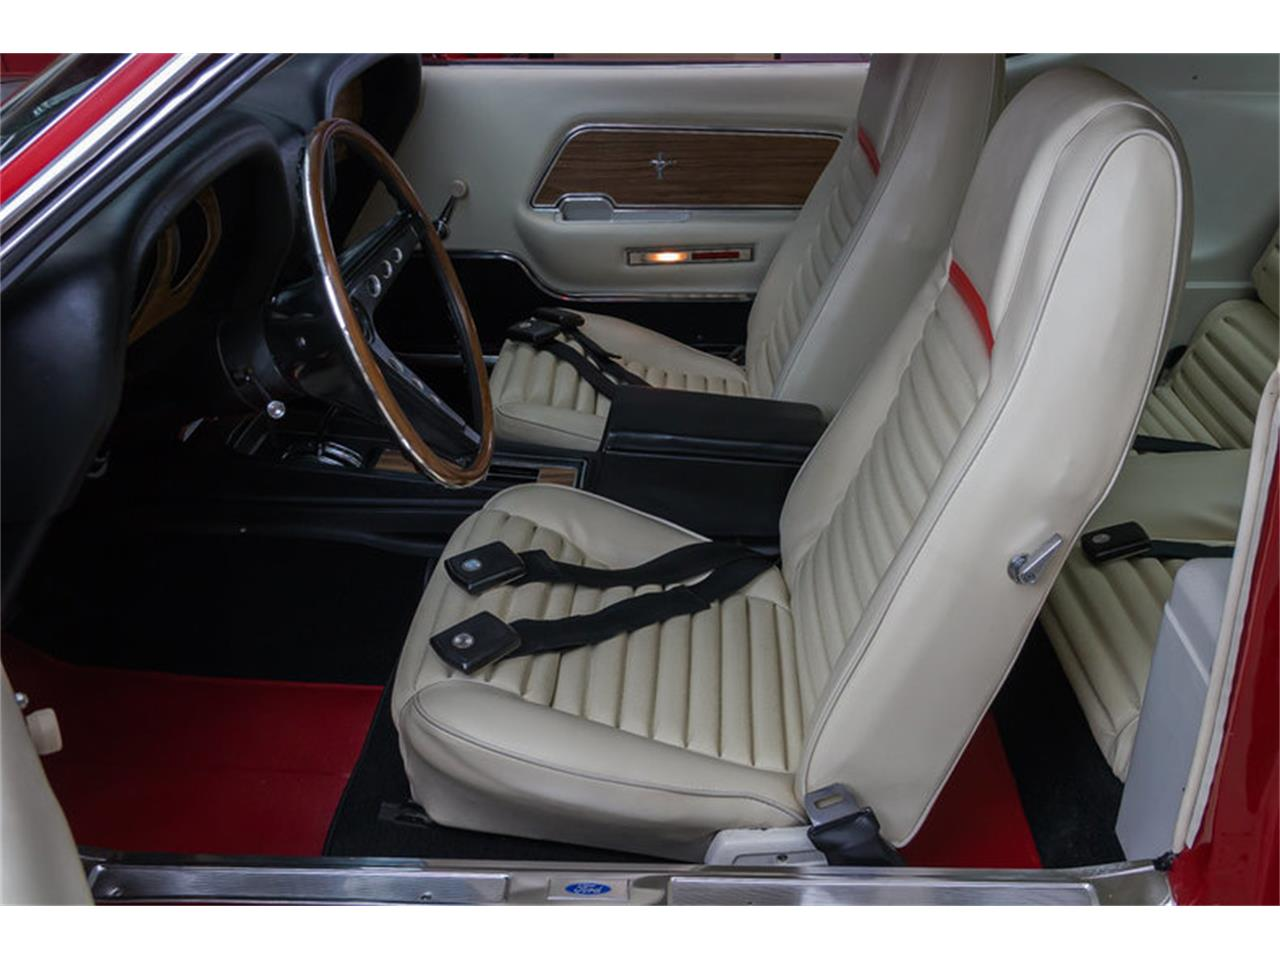 Large Picture of Classic '69 Ford Mustang Mach 1 S Code - $59,900.00 Offered by Vanguard Motor Sales - IS3G